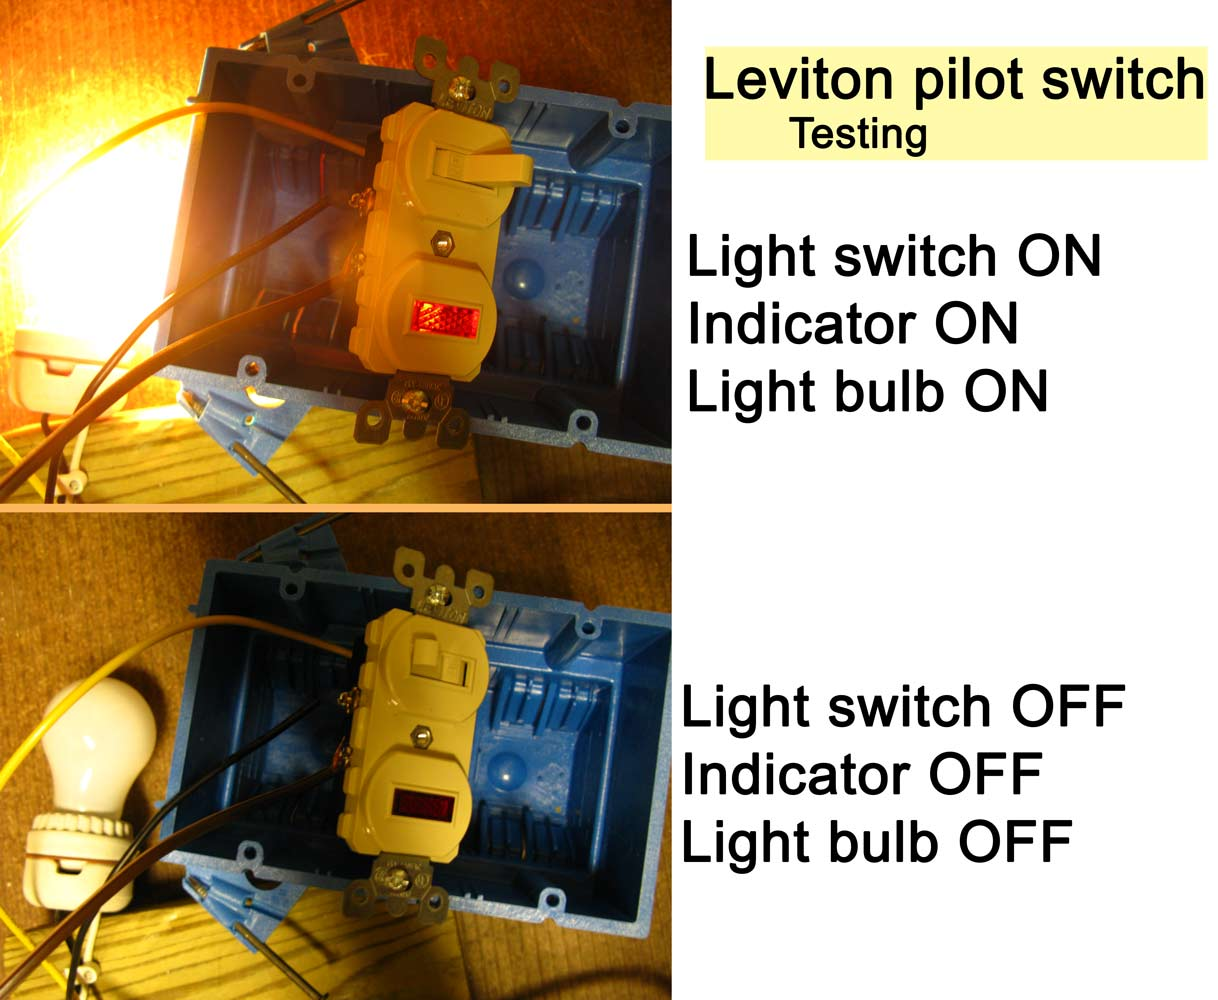 How To Wire Cooper 277 Pilot Light Switch Leviton Switches Wiring Diagram See Testing Photographs 1 2